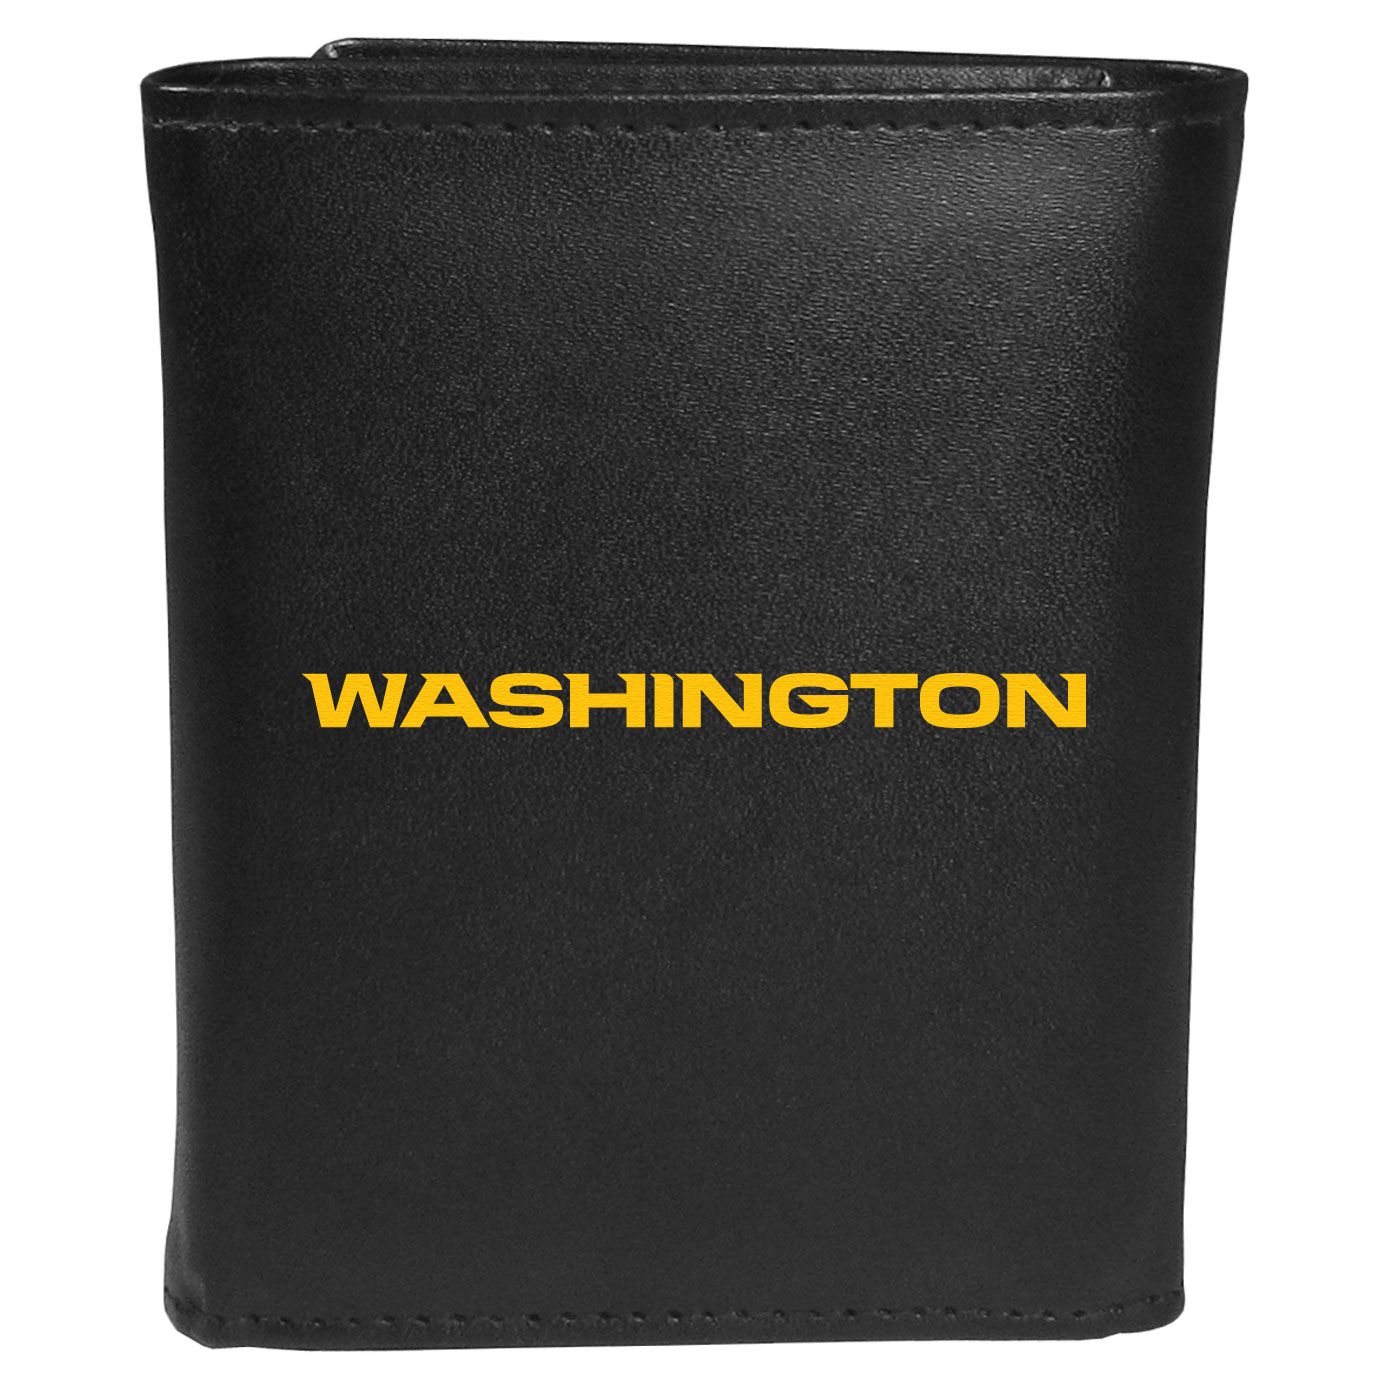 Washington Redskins Tri-fold Wallet Large Logo - Sports fans do not have to sacrifice style with this classic tri-fold wallet that sports theWashington Redskins?extra large logo. This men's fashion accessory has a leather grain look and expert craftmanship for a quality wallet at a great price. The wallet features inner credit card slots, windowed ID slot and a large billfold pocket. The front of the wallet features an extra large printed team logo.